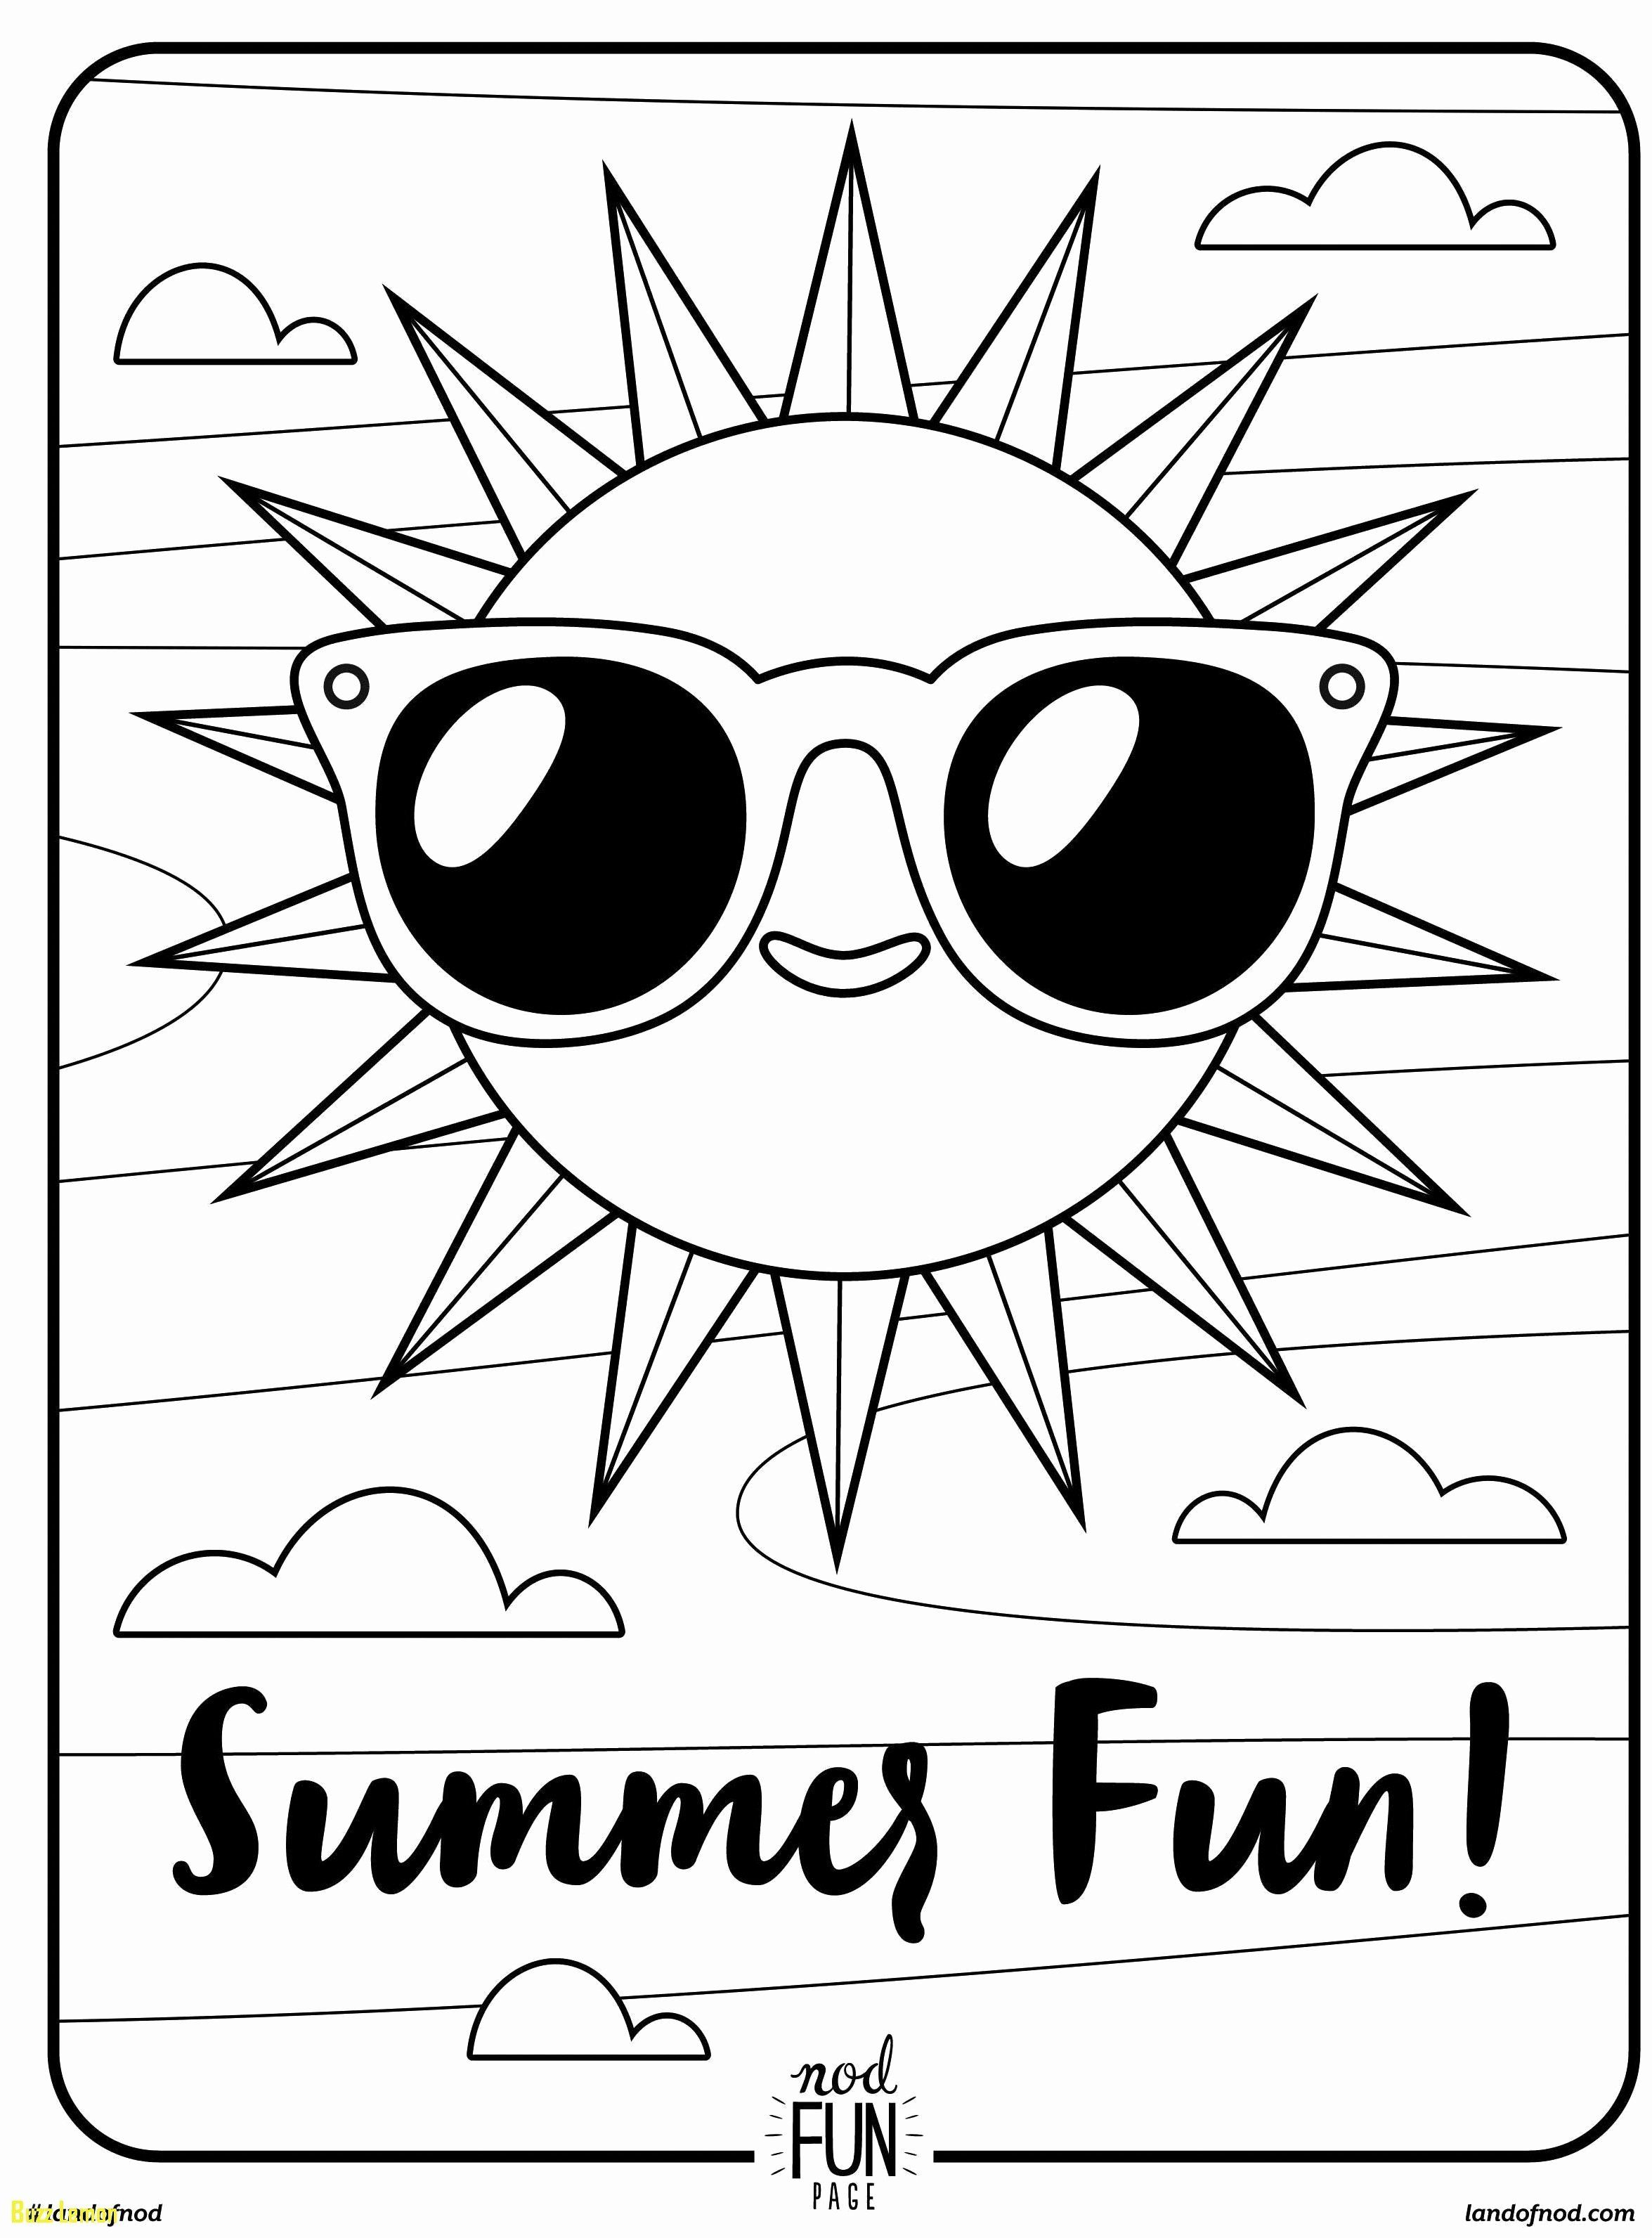 14+ Cute summer coloring pages printable ideas